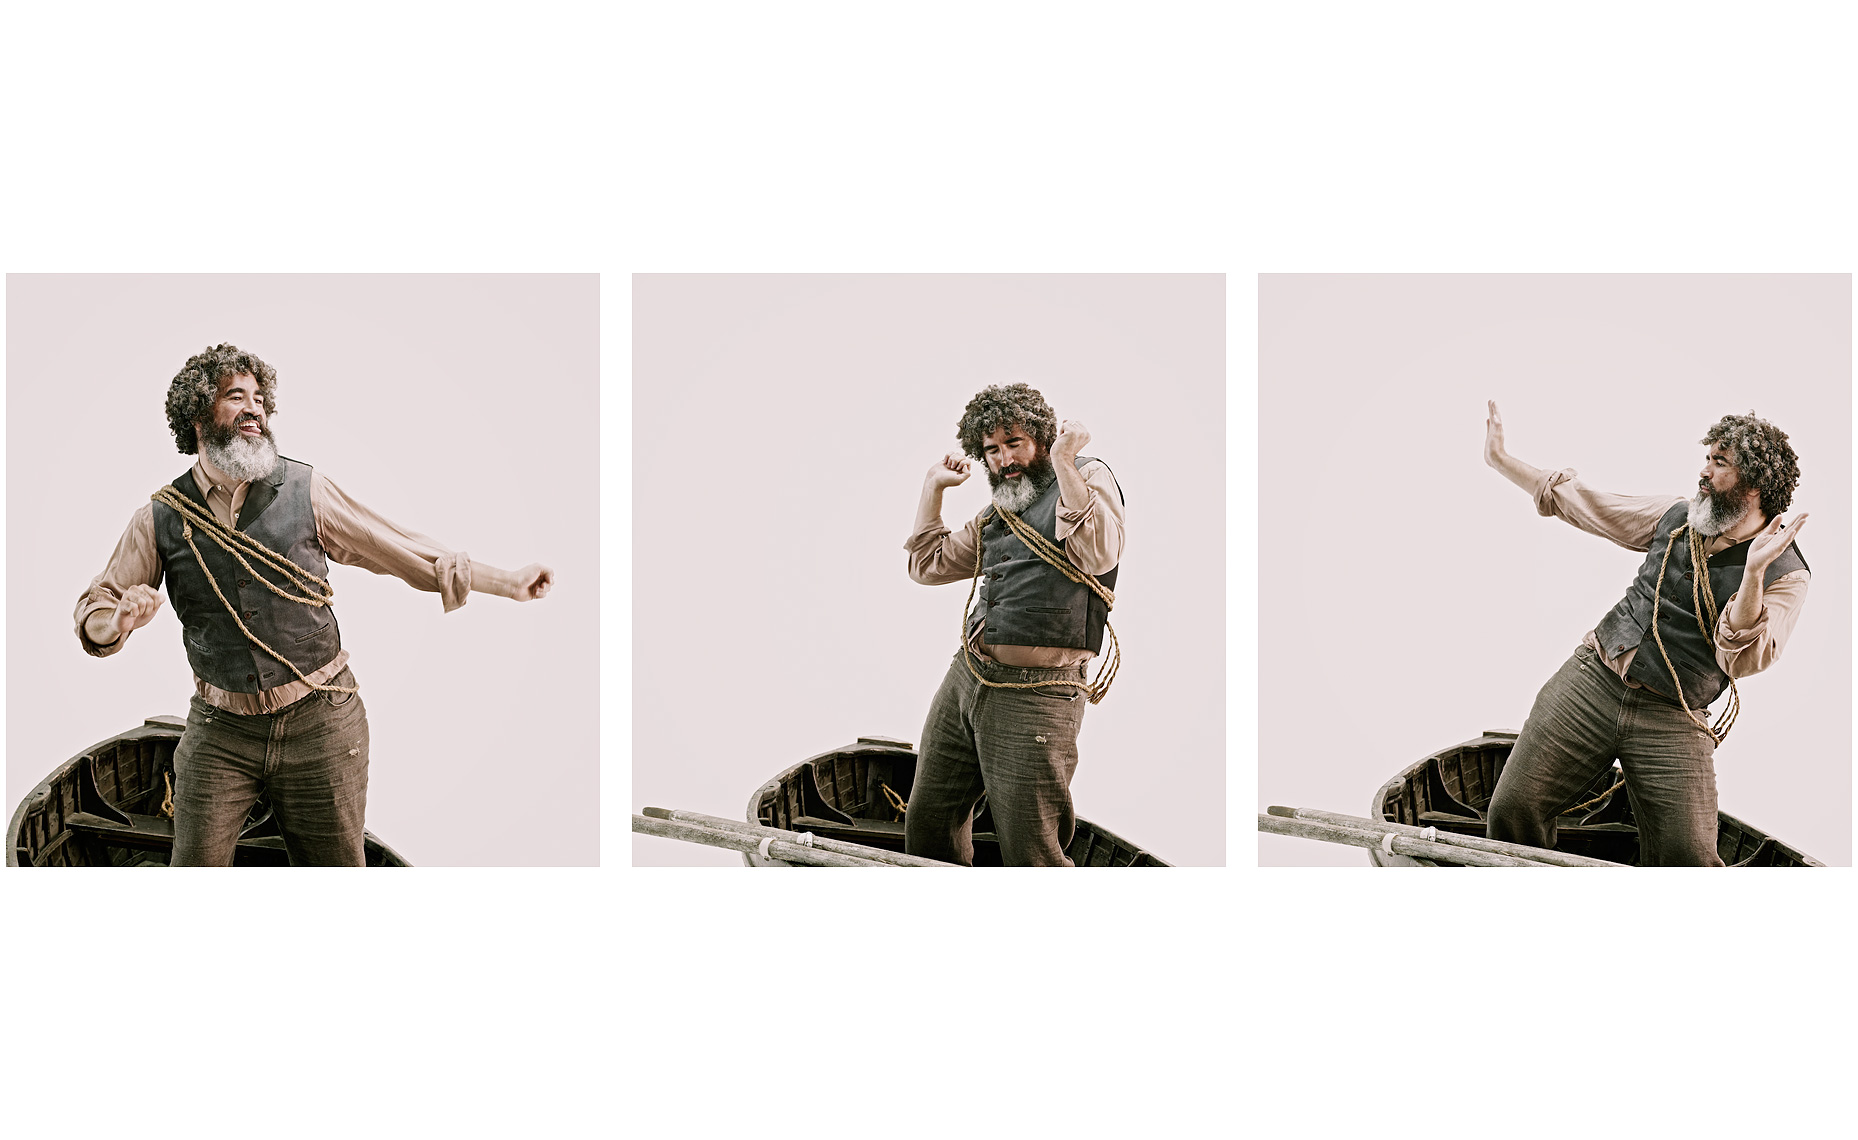 ethanpines_LostBoat_DancingTriptych_WhiteBG